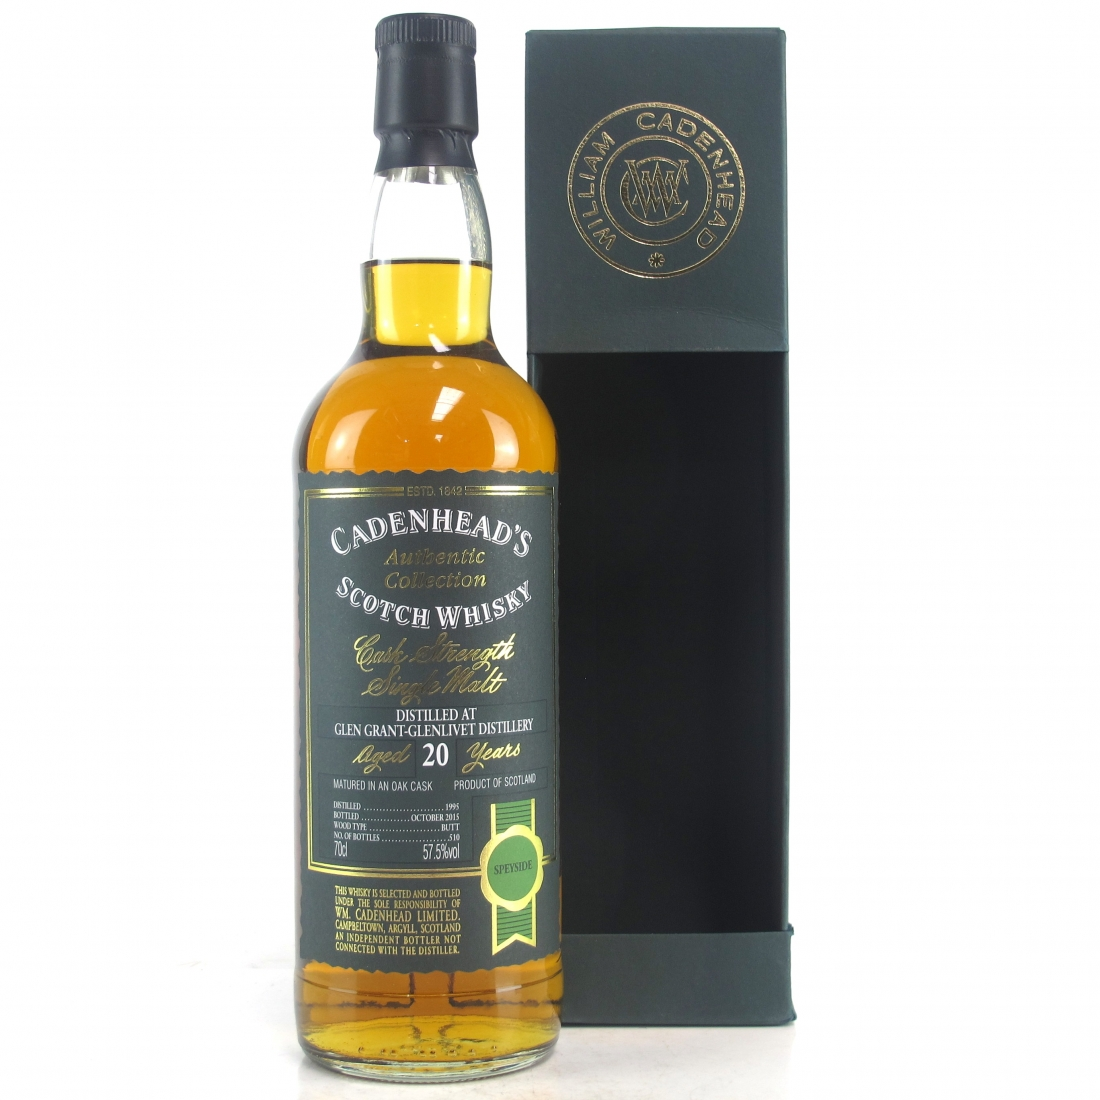 Glen Grant 1995 Cadenhead's 20 Year Old